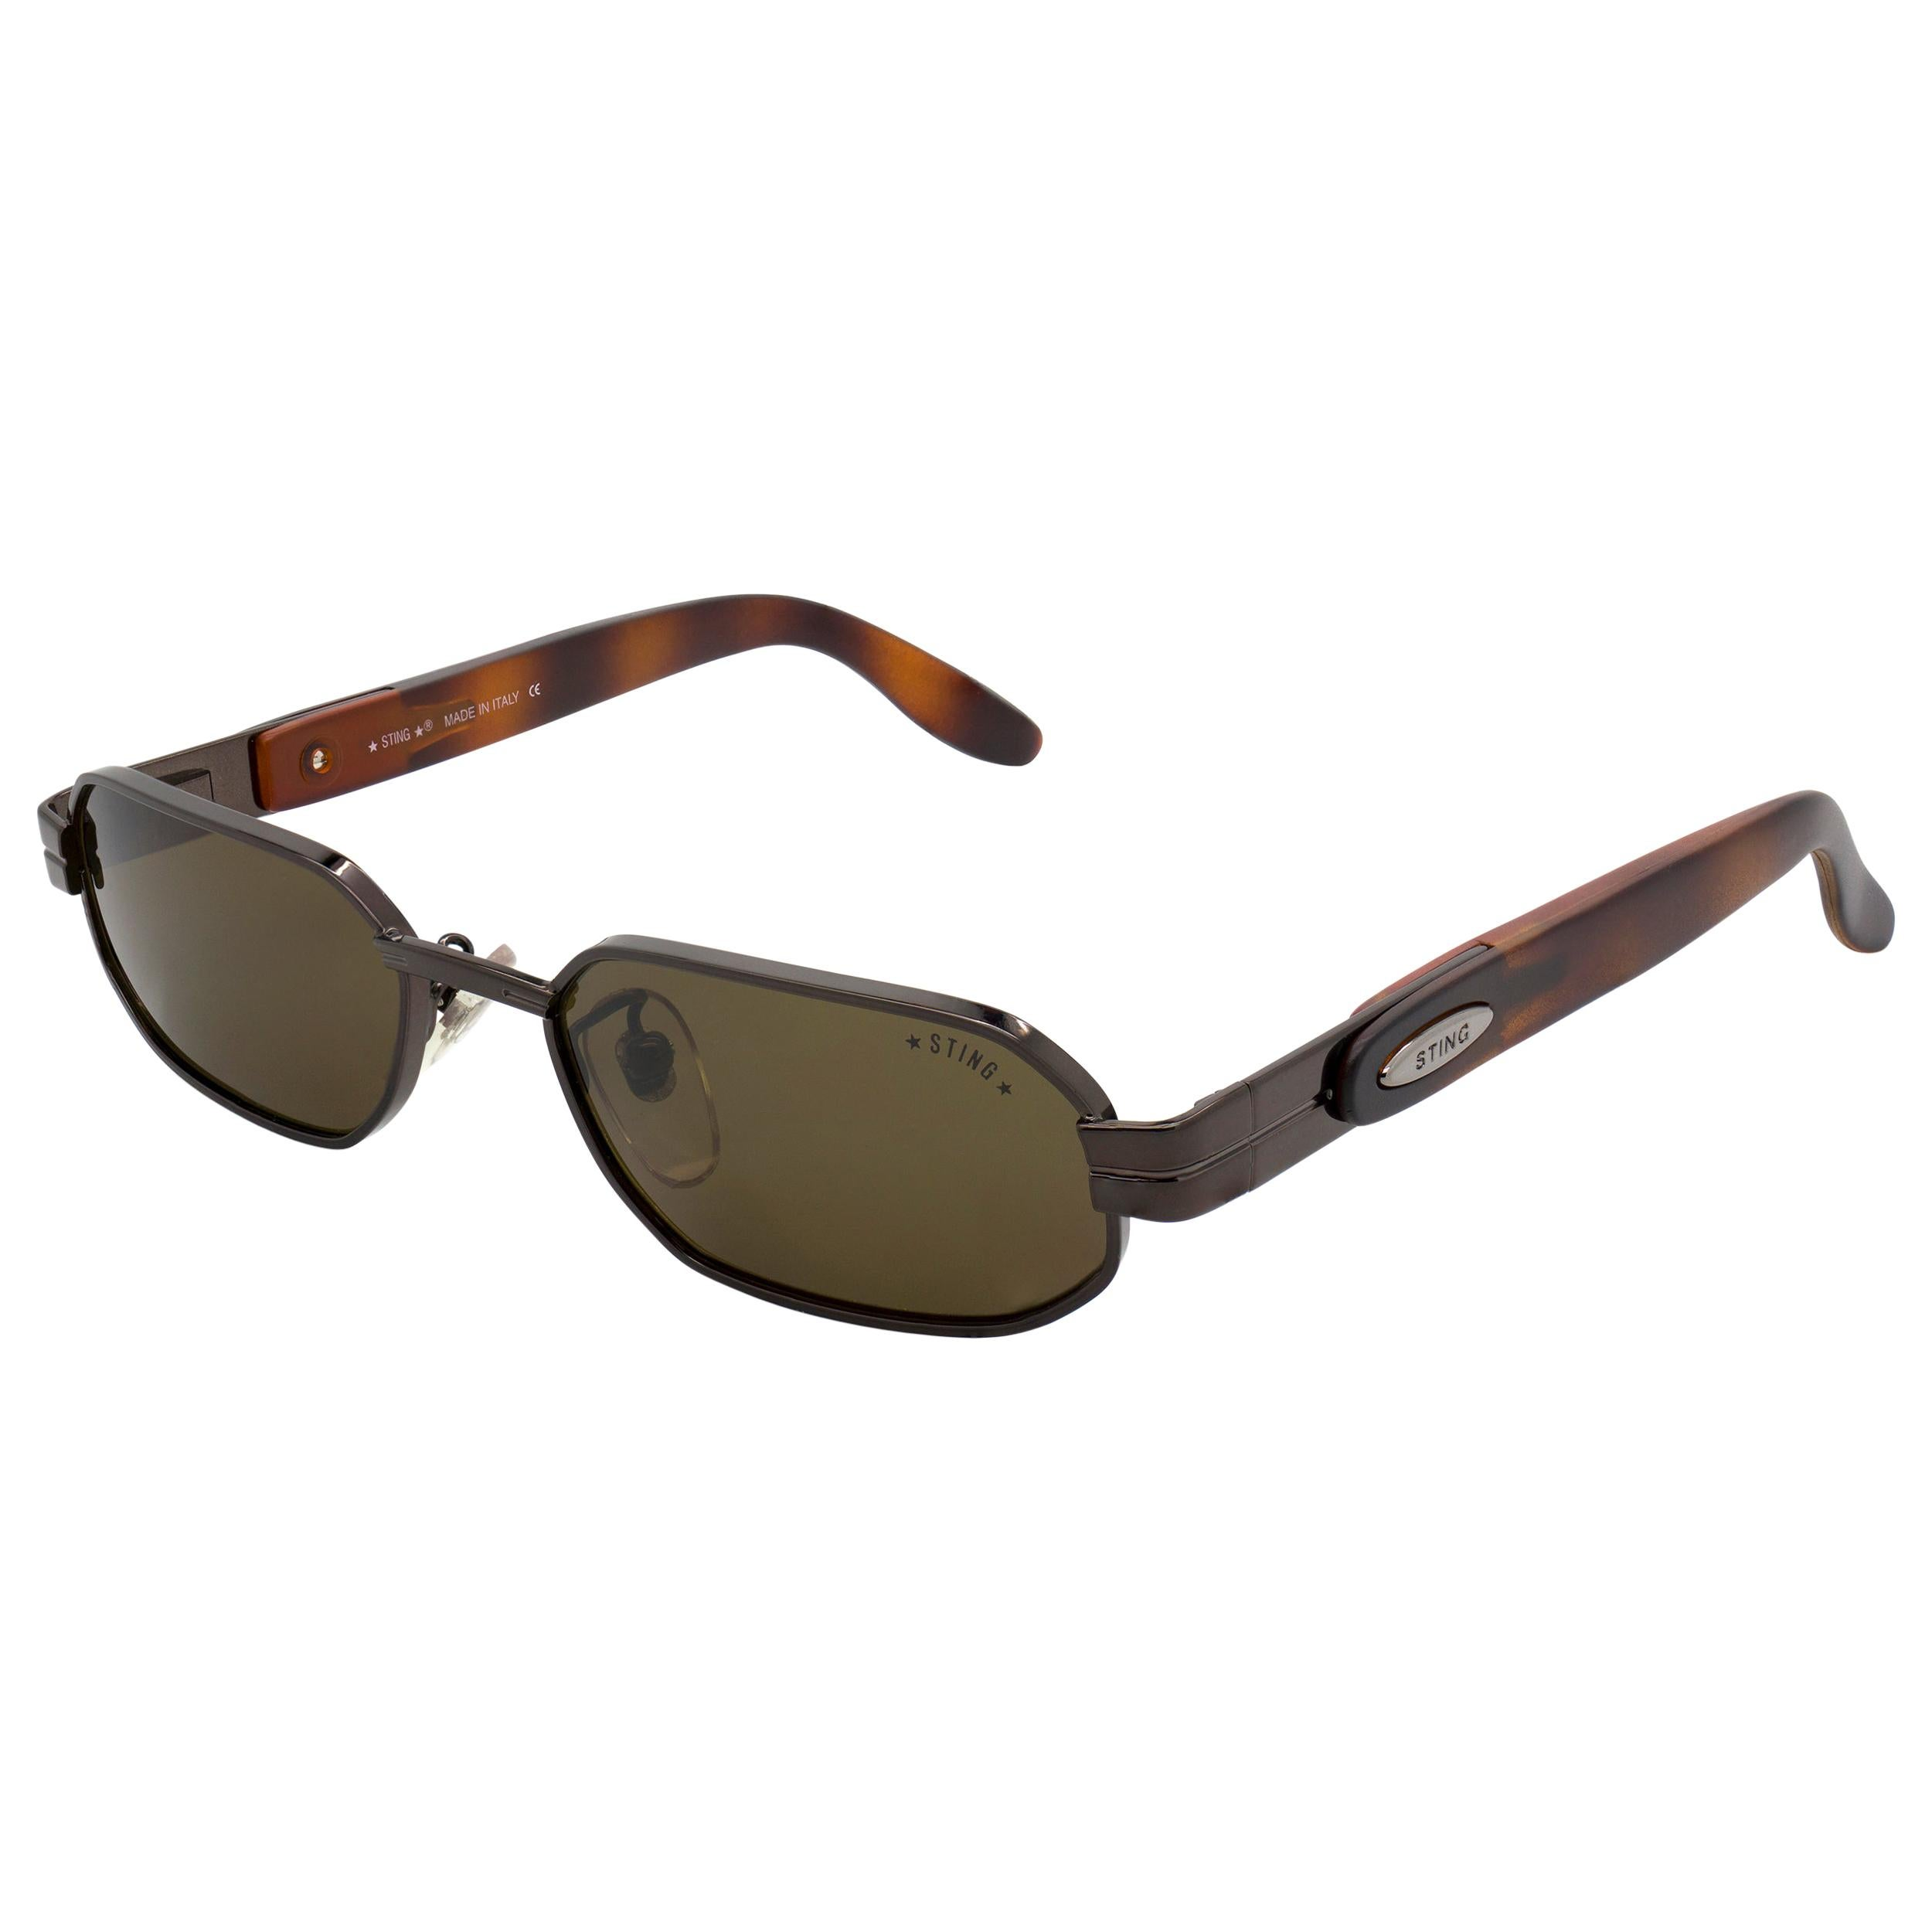 Hexagonal vintage sunglasses by Sting, Italy